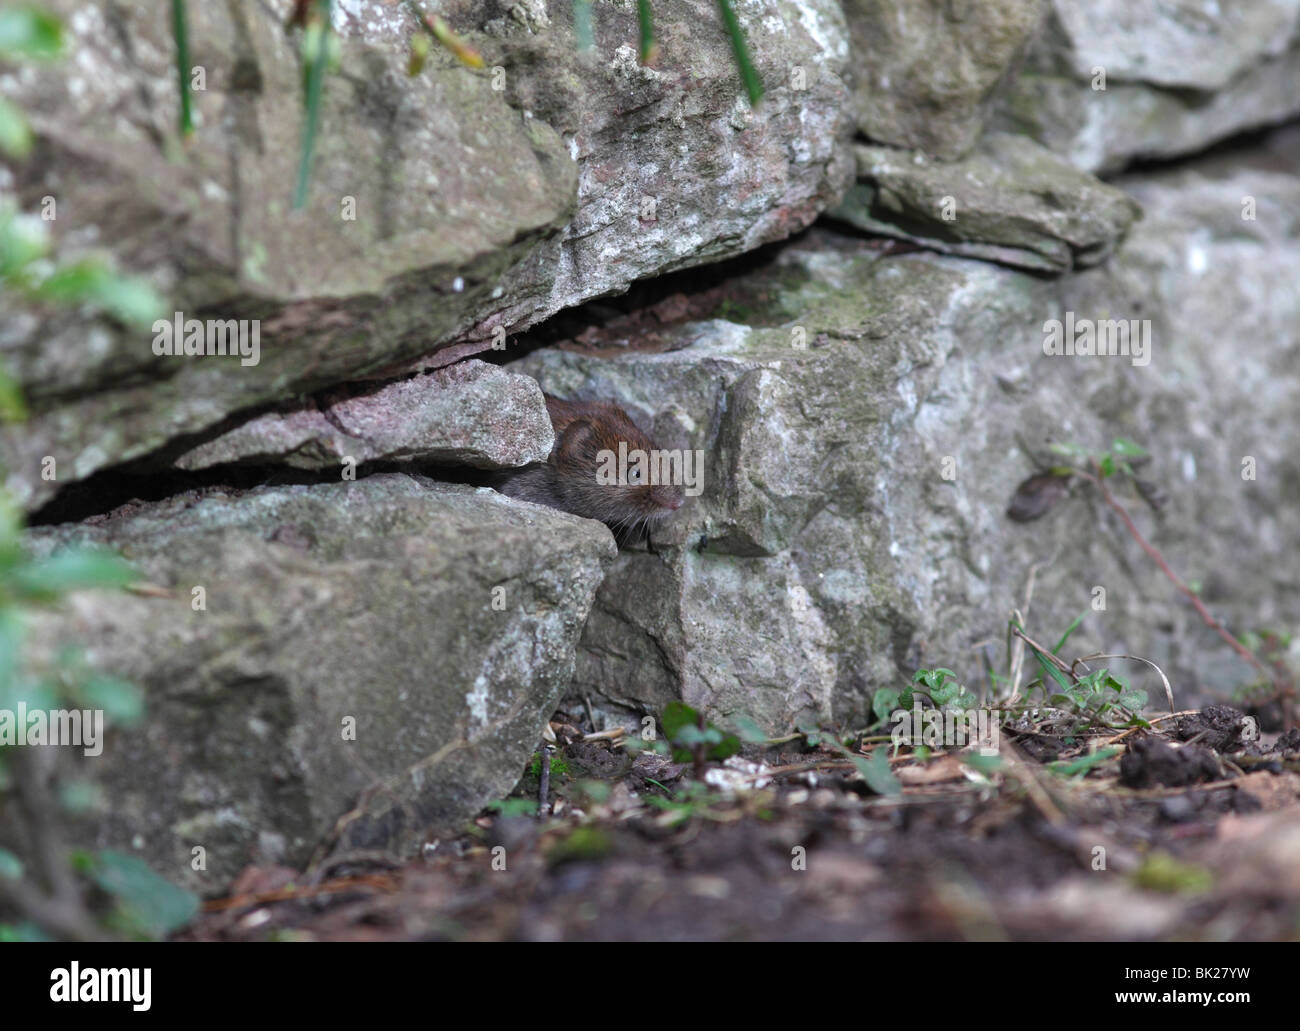 Bank vole (Clethrionomys glareolus) looking out of hole in stone wall - Stock Image